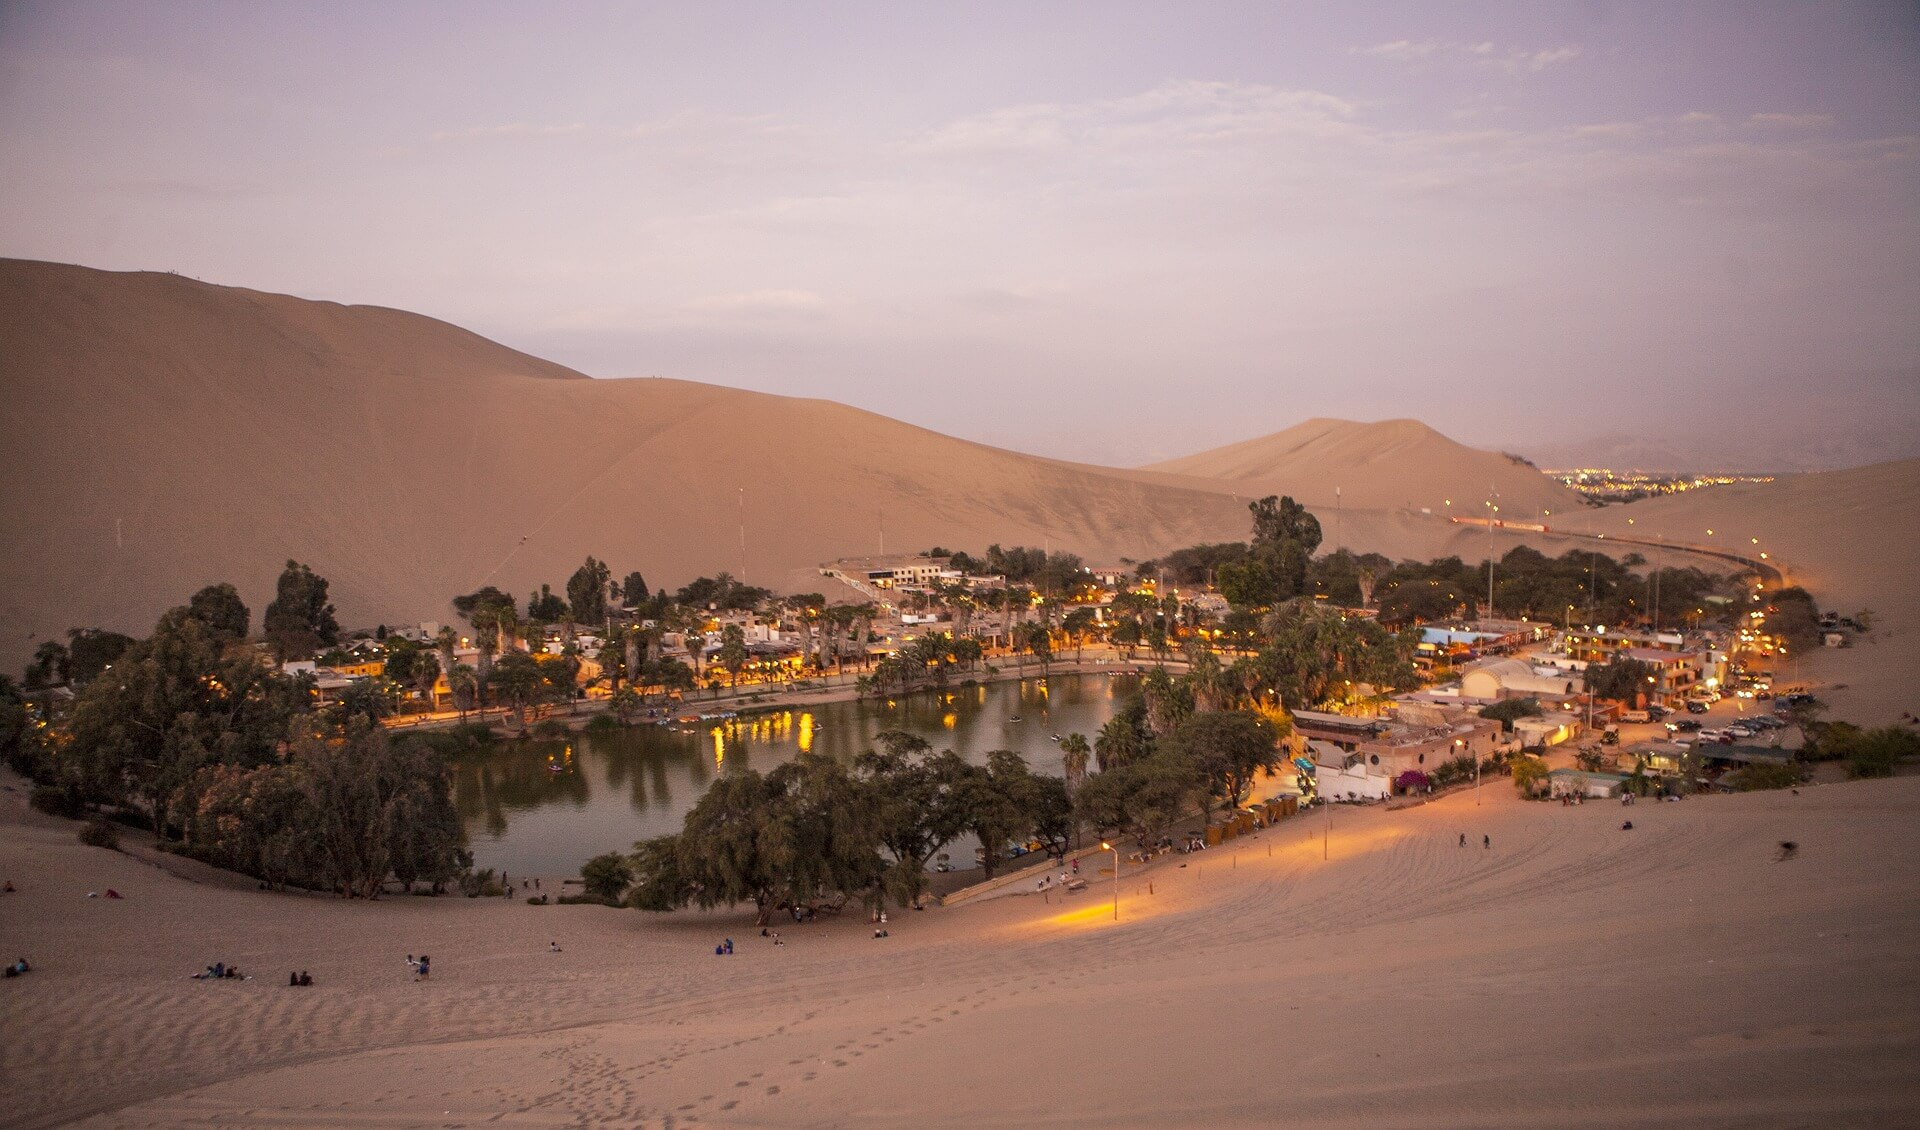 The sandy oasis known as Huacachina, Peru